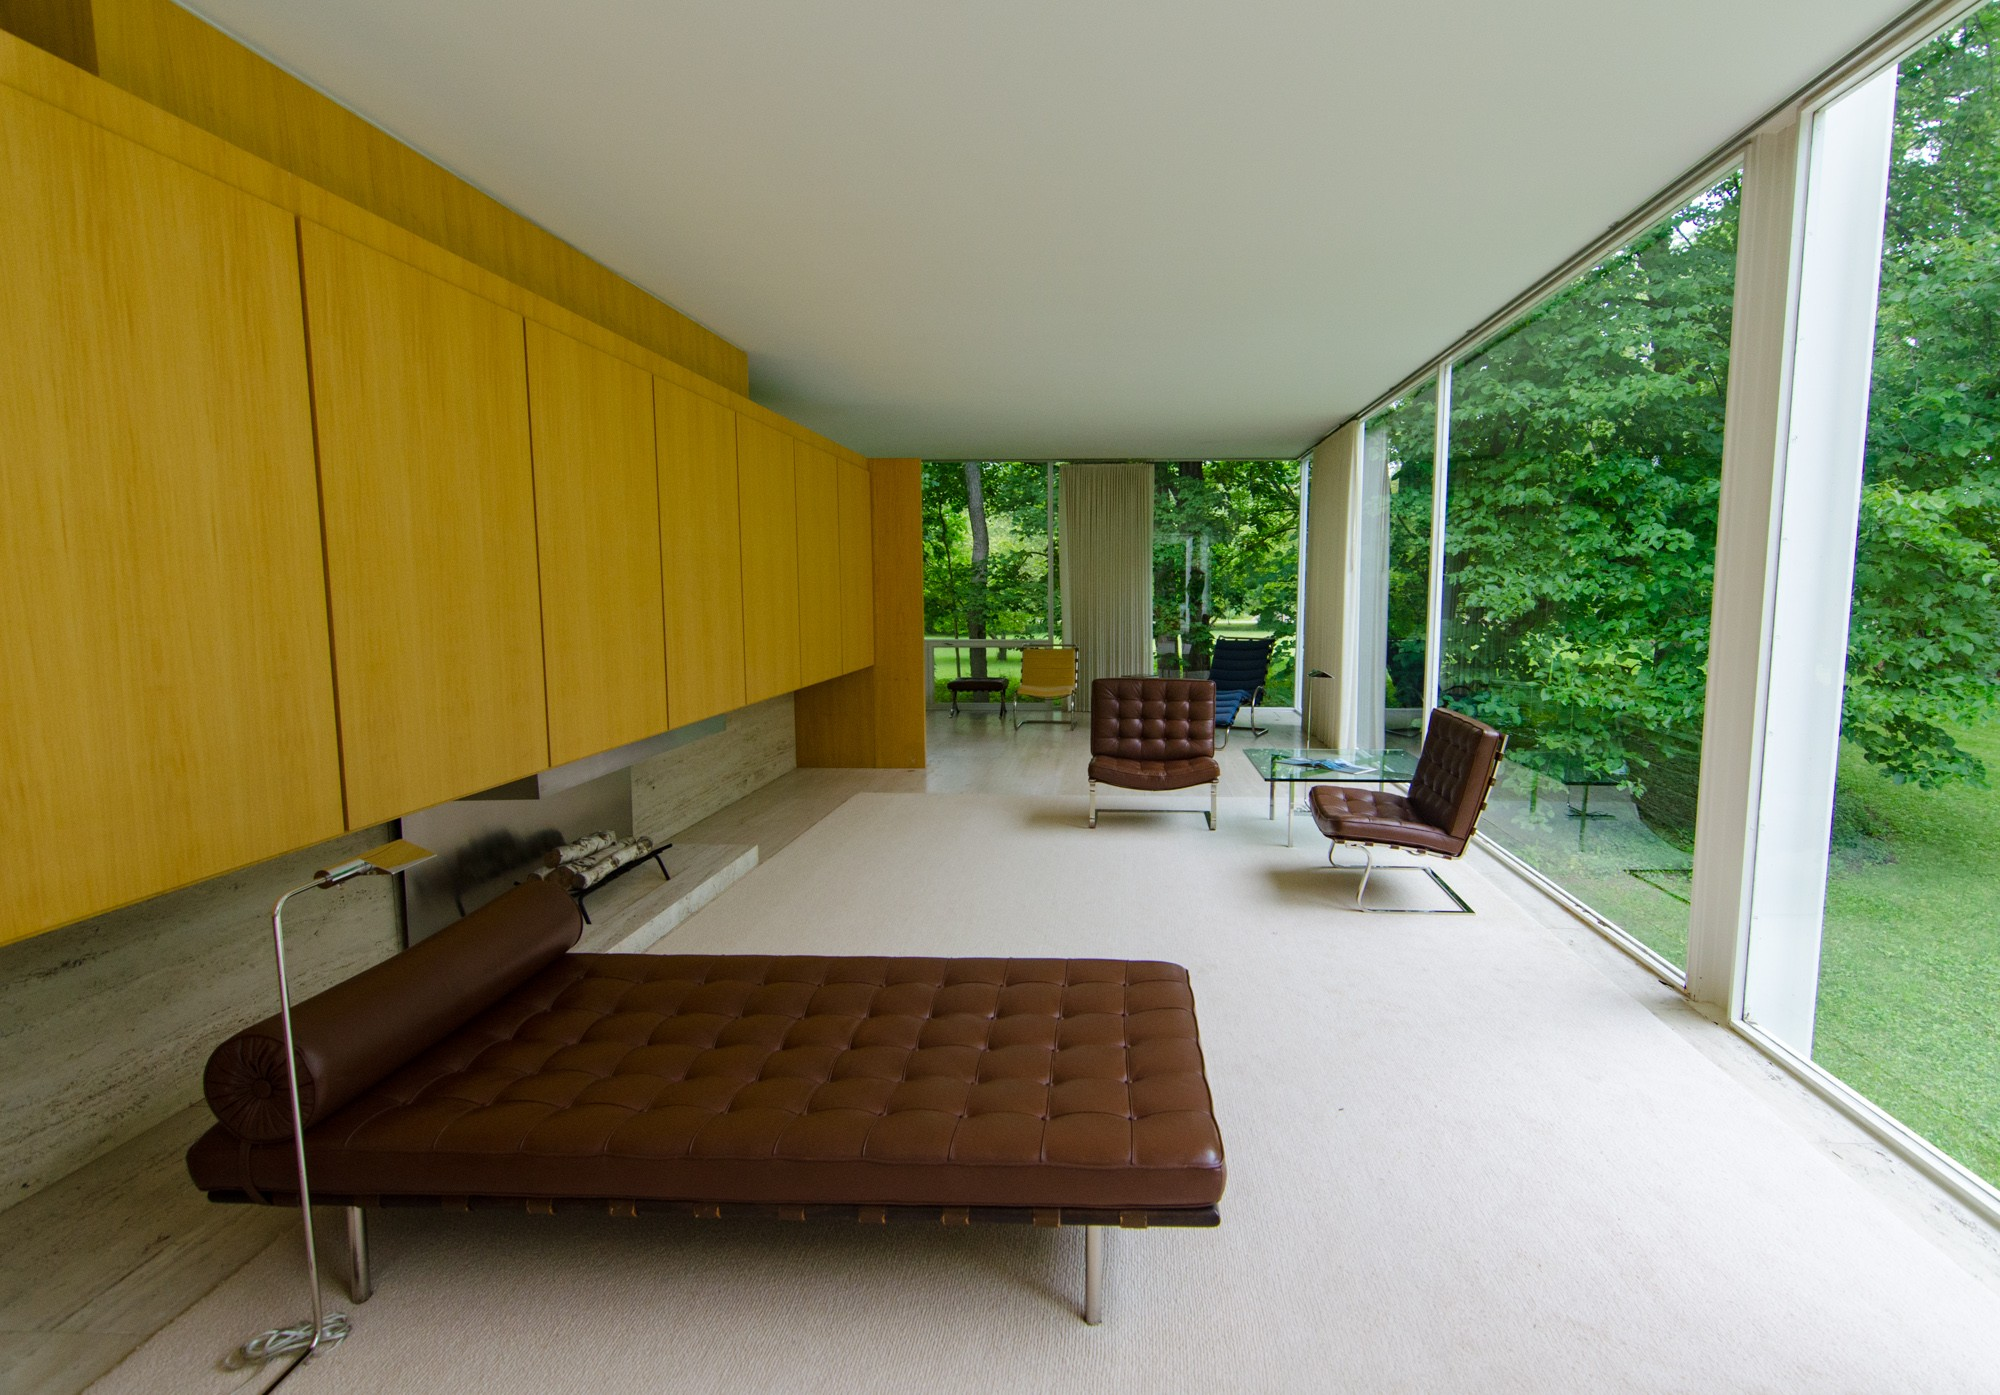 Farnsworth House PLUS · Tours · Chicago Architecture Foundation - CAF